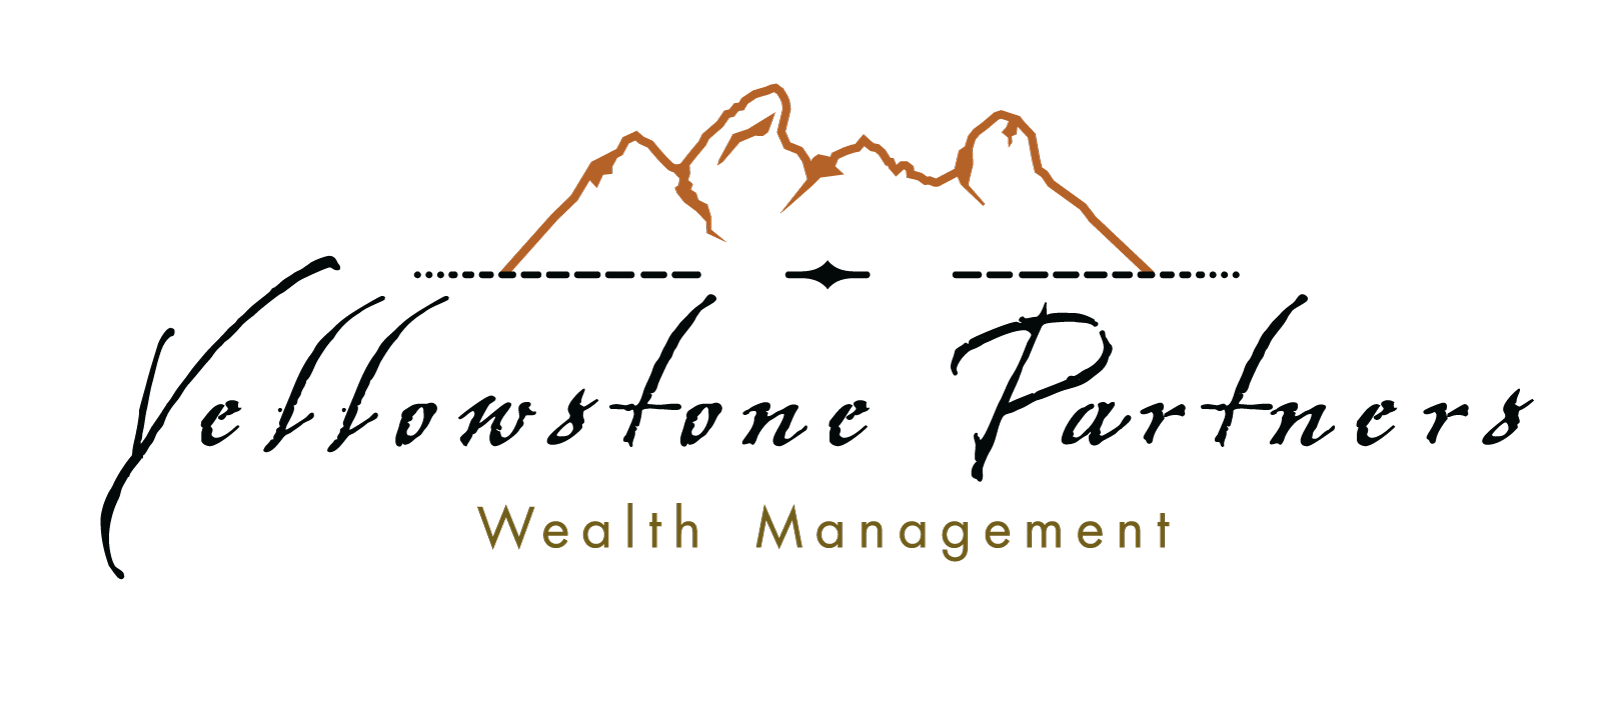 yellowstonelogo-with-Wealth-Management